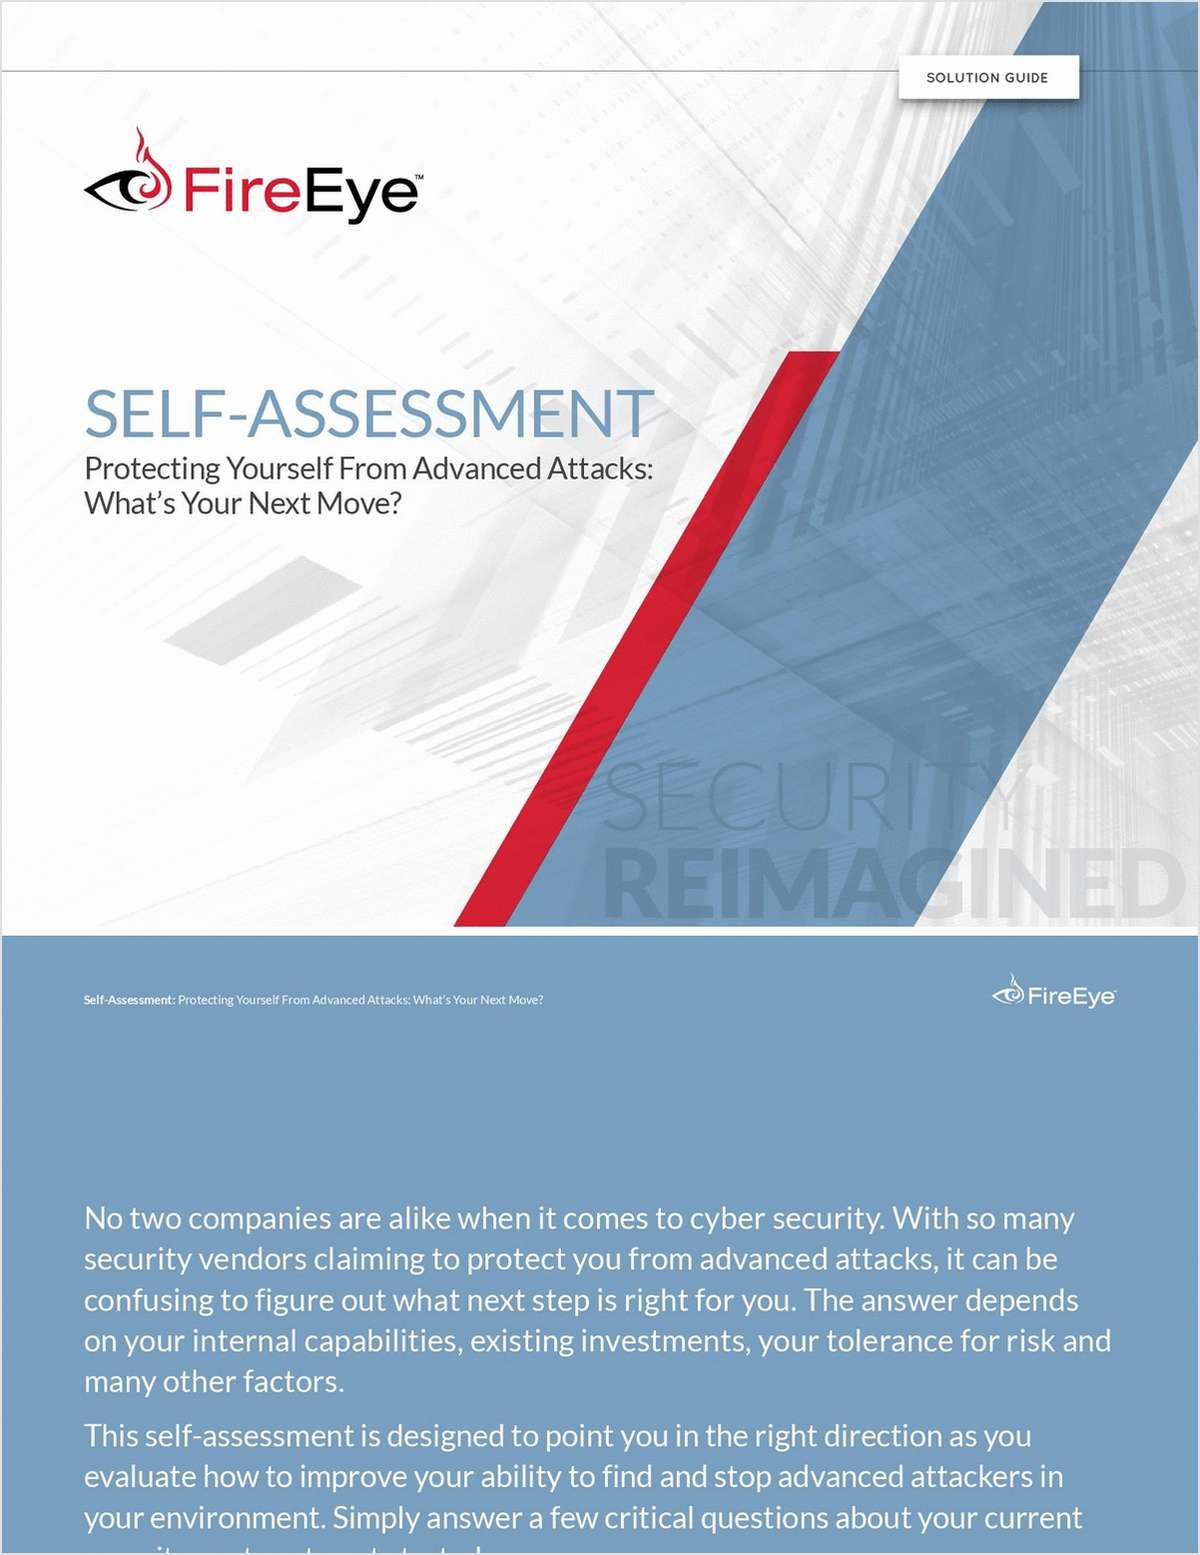 Self-Assessment - Protecting Yourself From Advanced Attacks: What's Your Next Move?